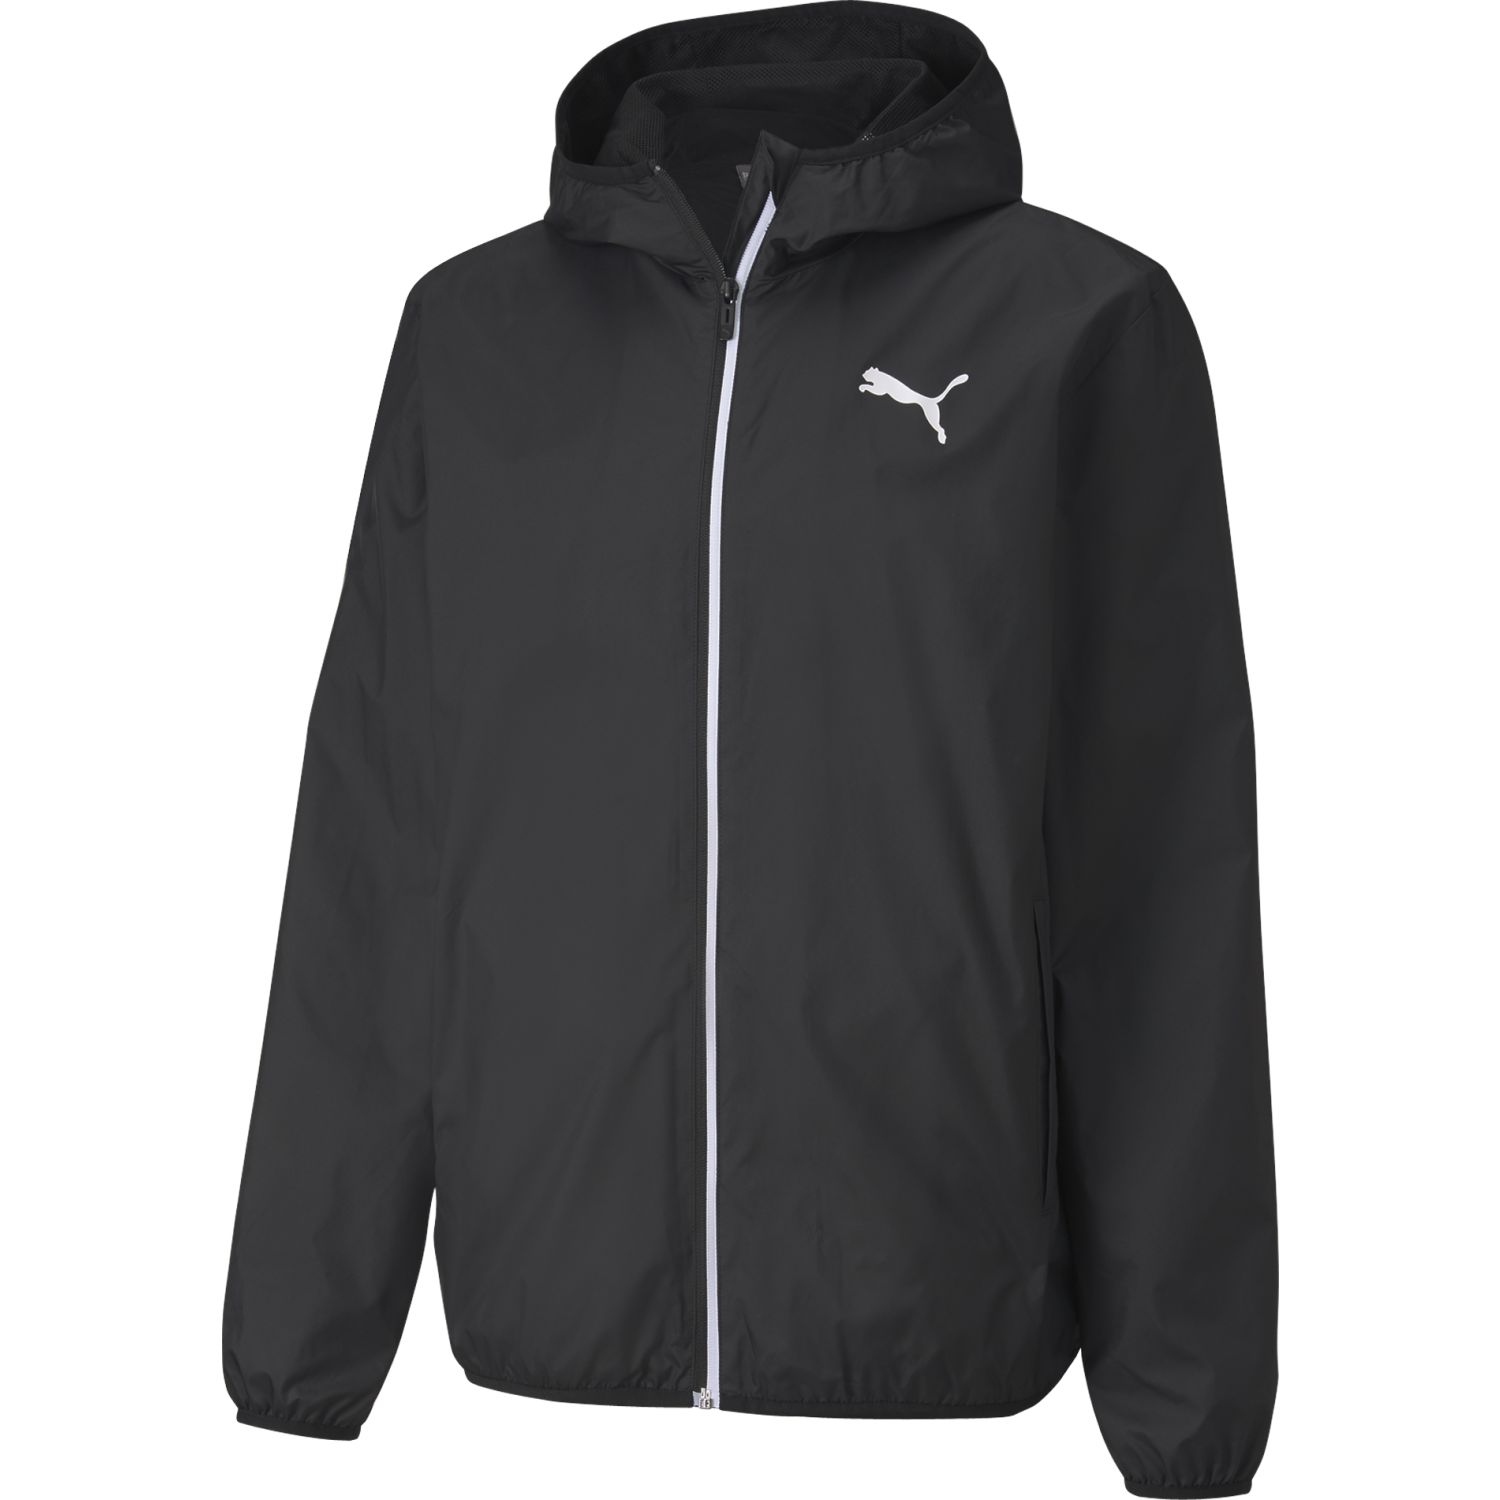 Puma essentials solid windbreaker Negro Casacas de Atletismo